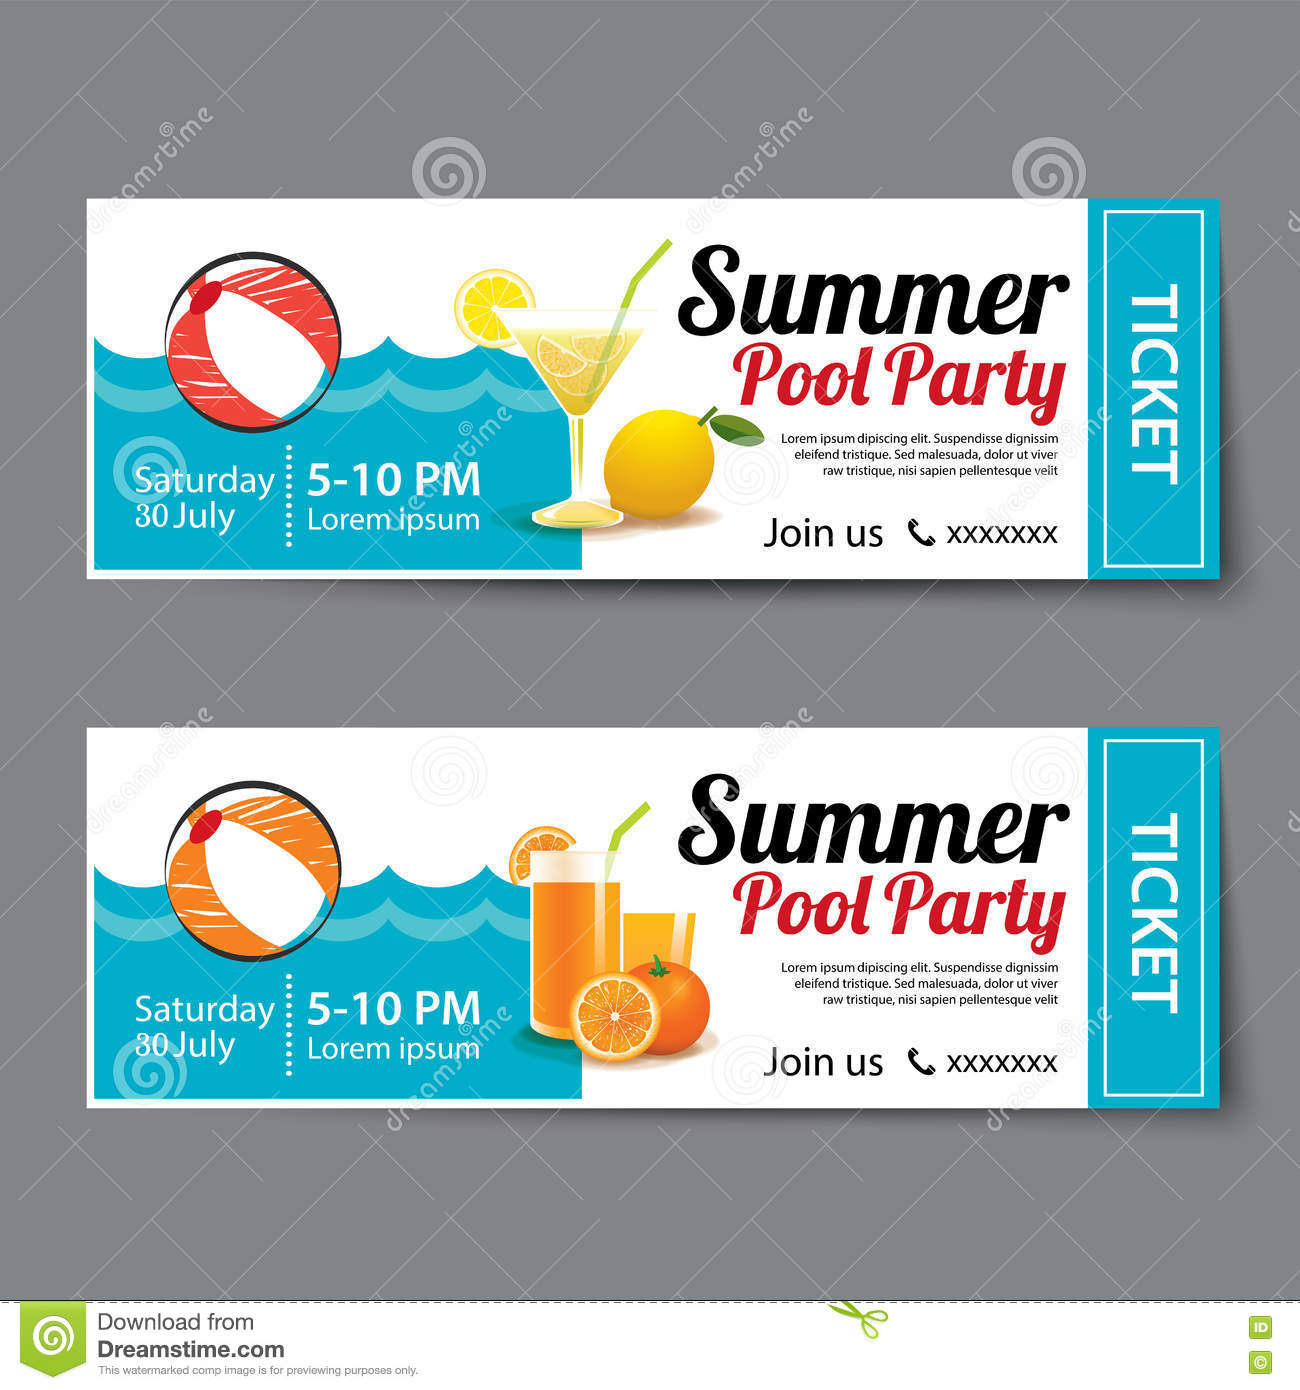 Wonderful Summer Pool Party Ticket Template Throughout Party Ticket Template